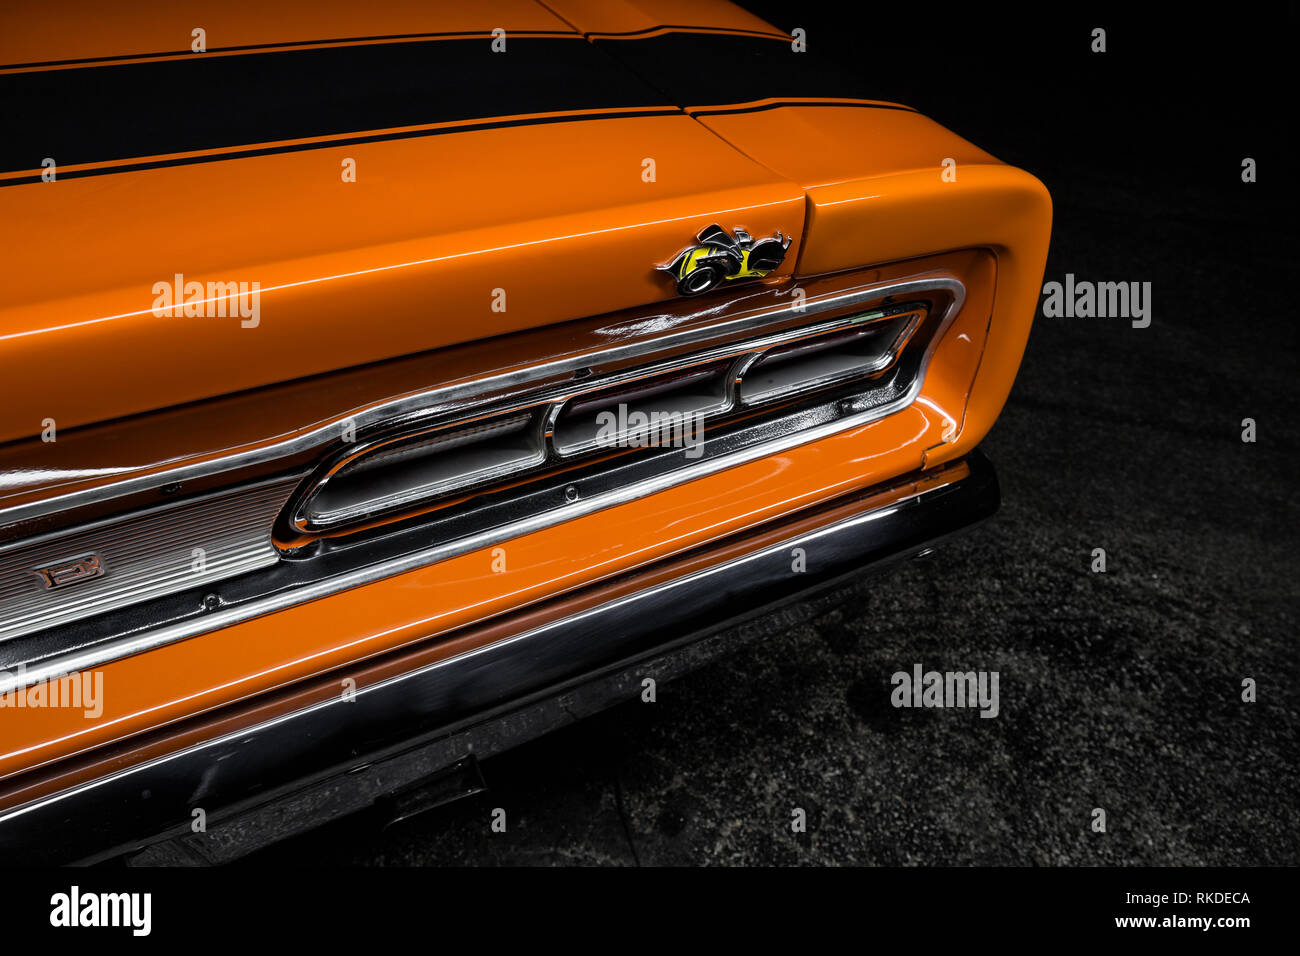 1969 Dodge Super Bee A12 Stock Photo: 235709946 - Alamy